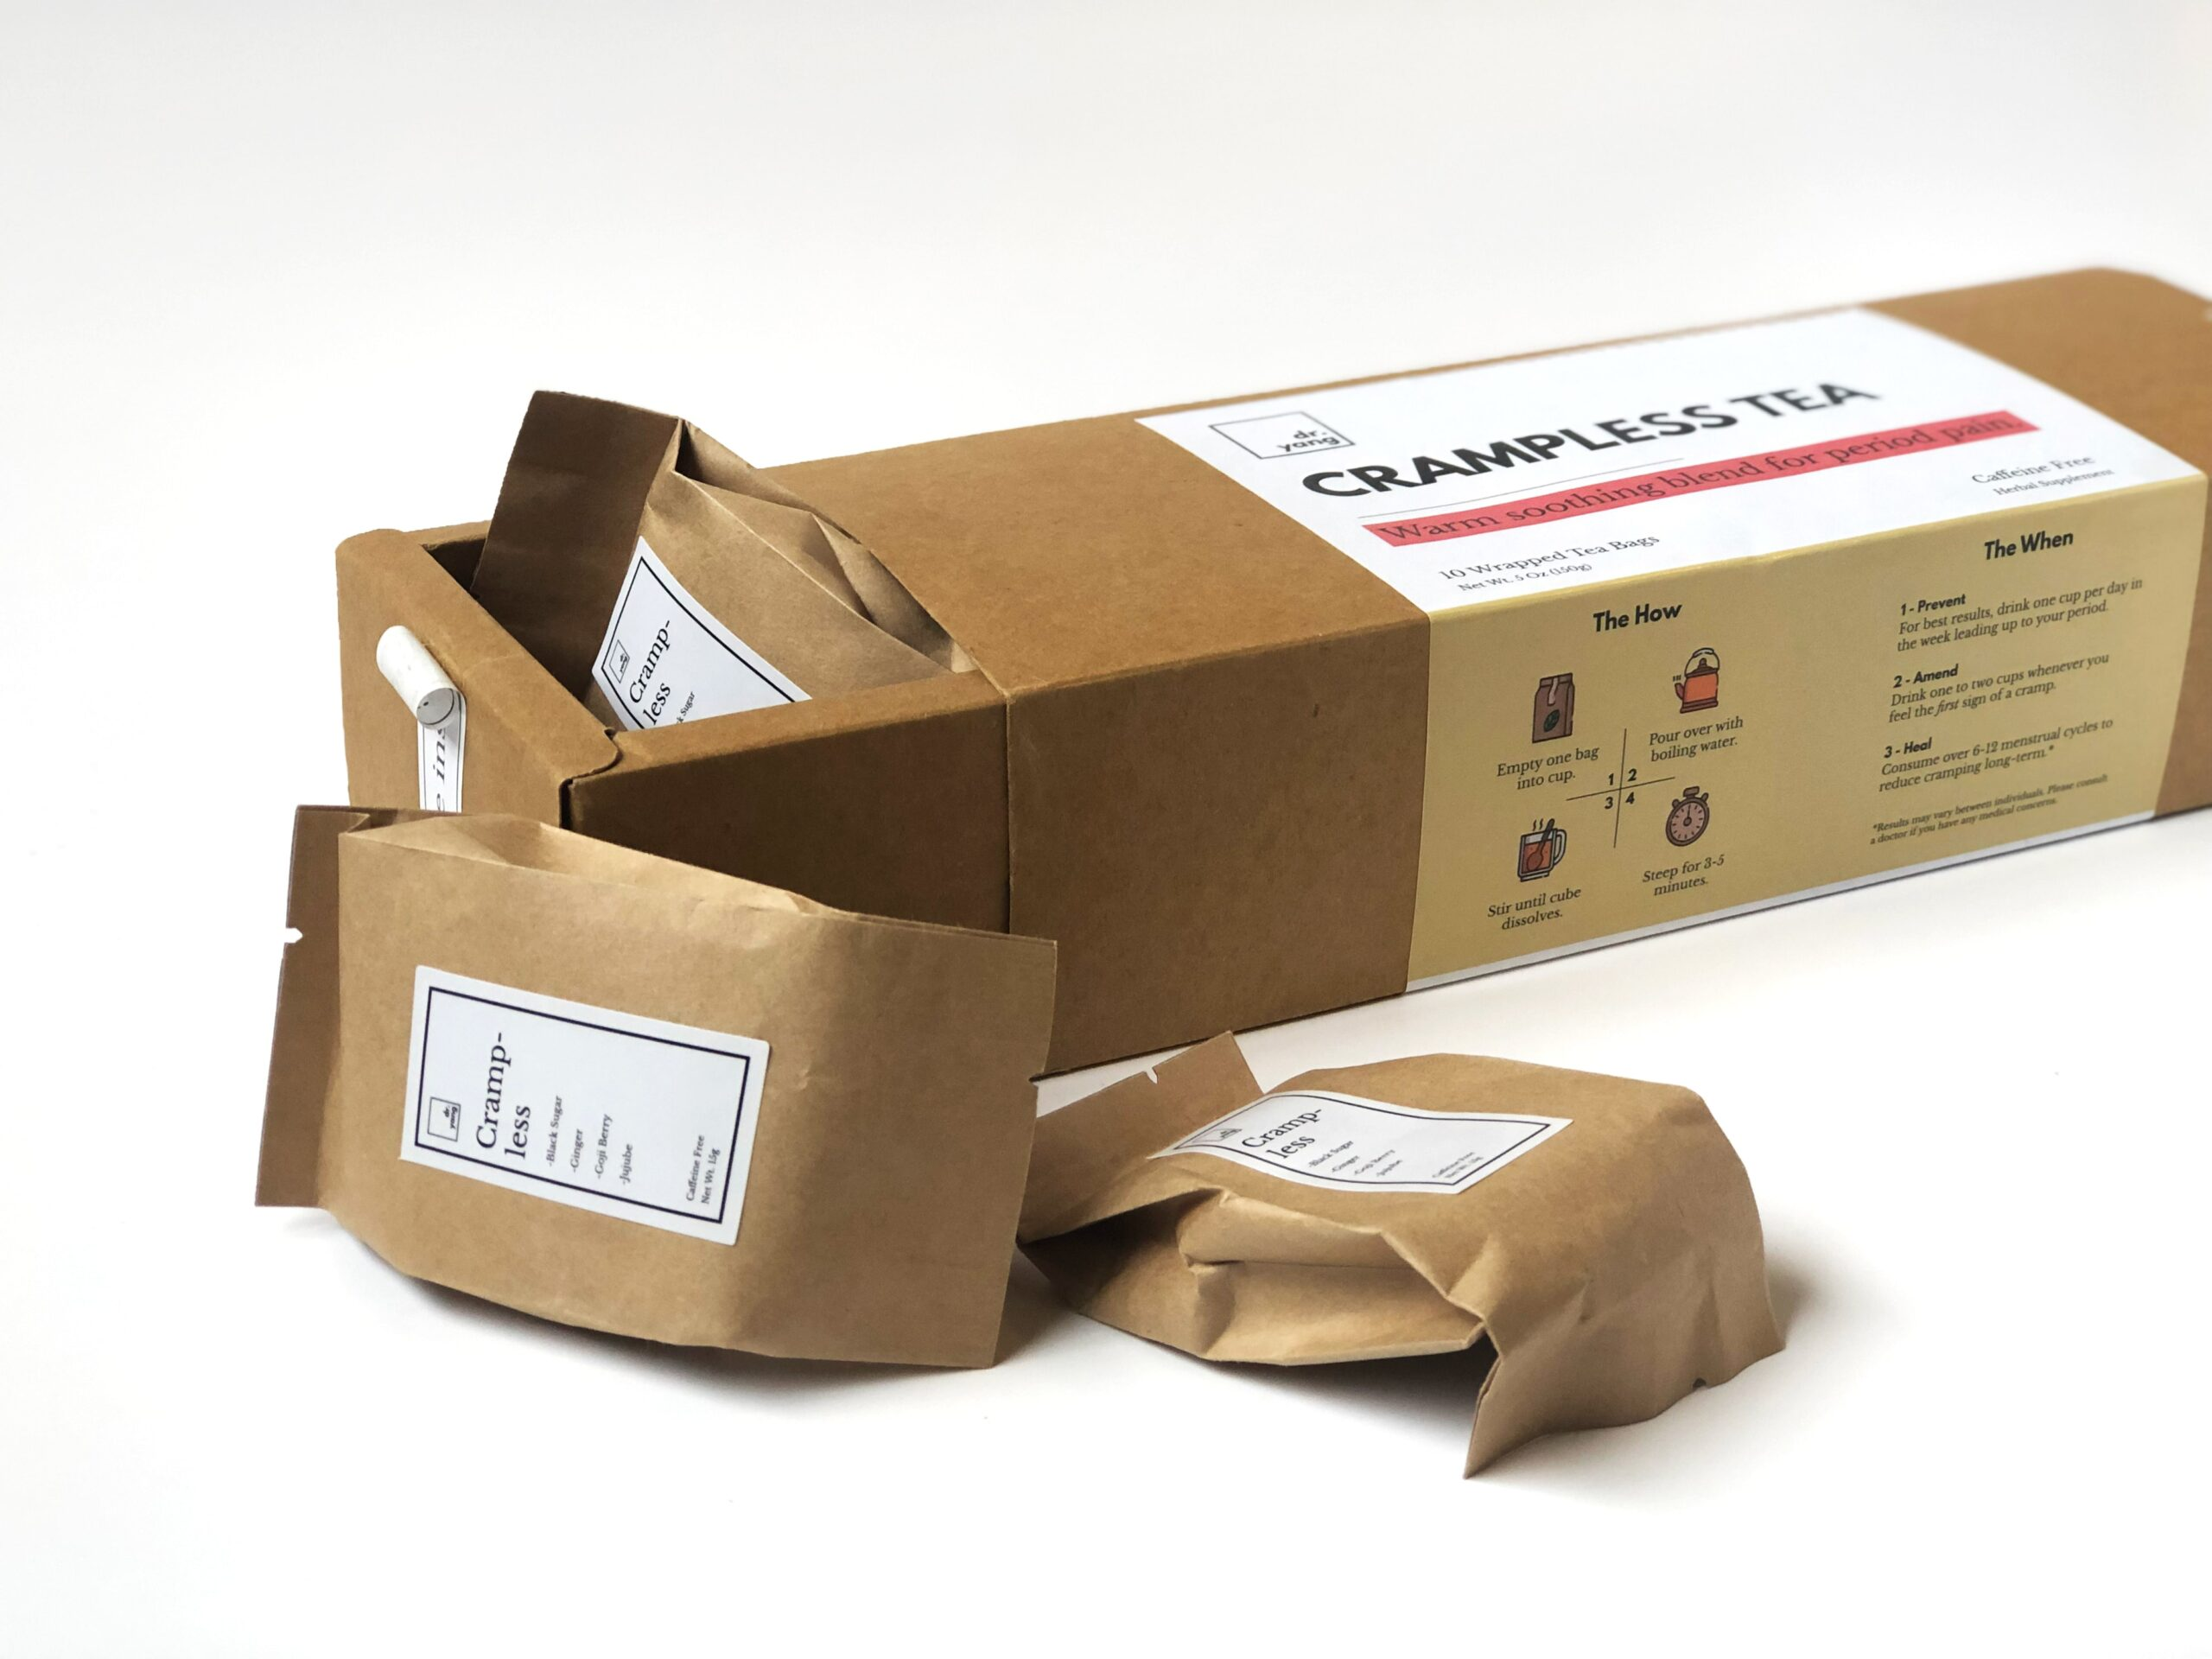 Make sure your items have appropriate packaging